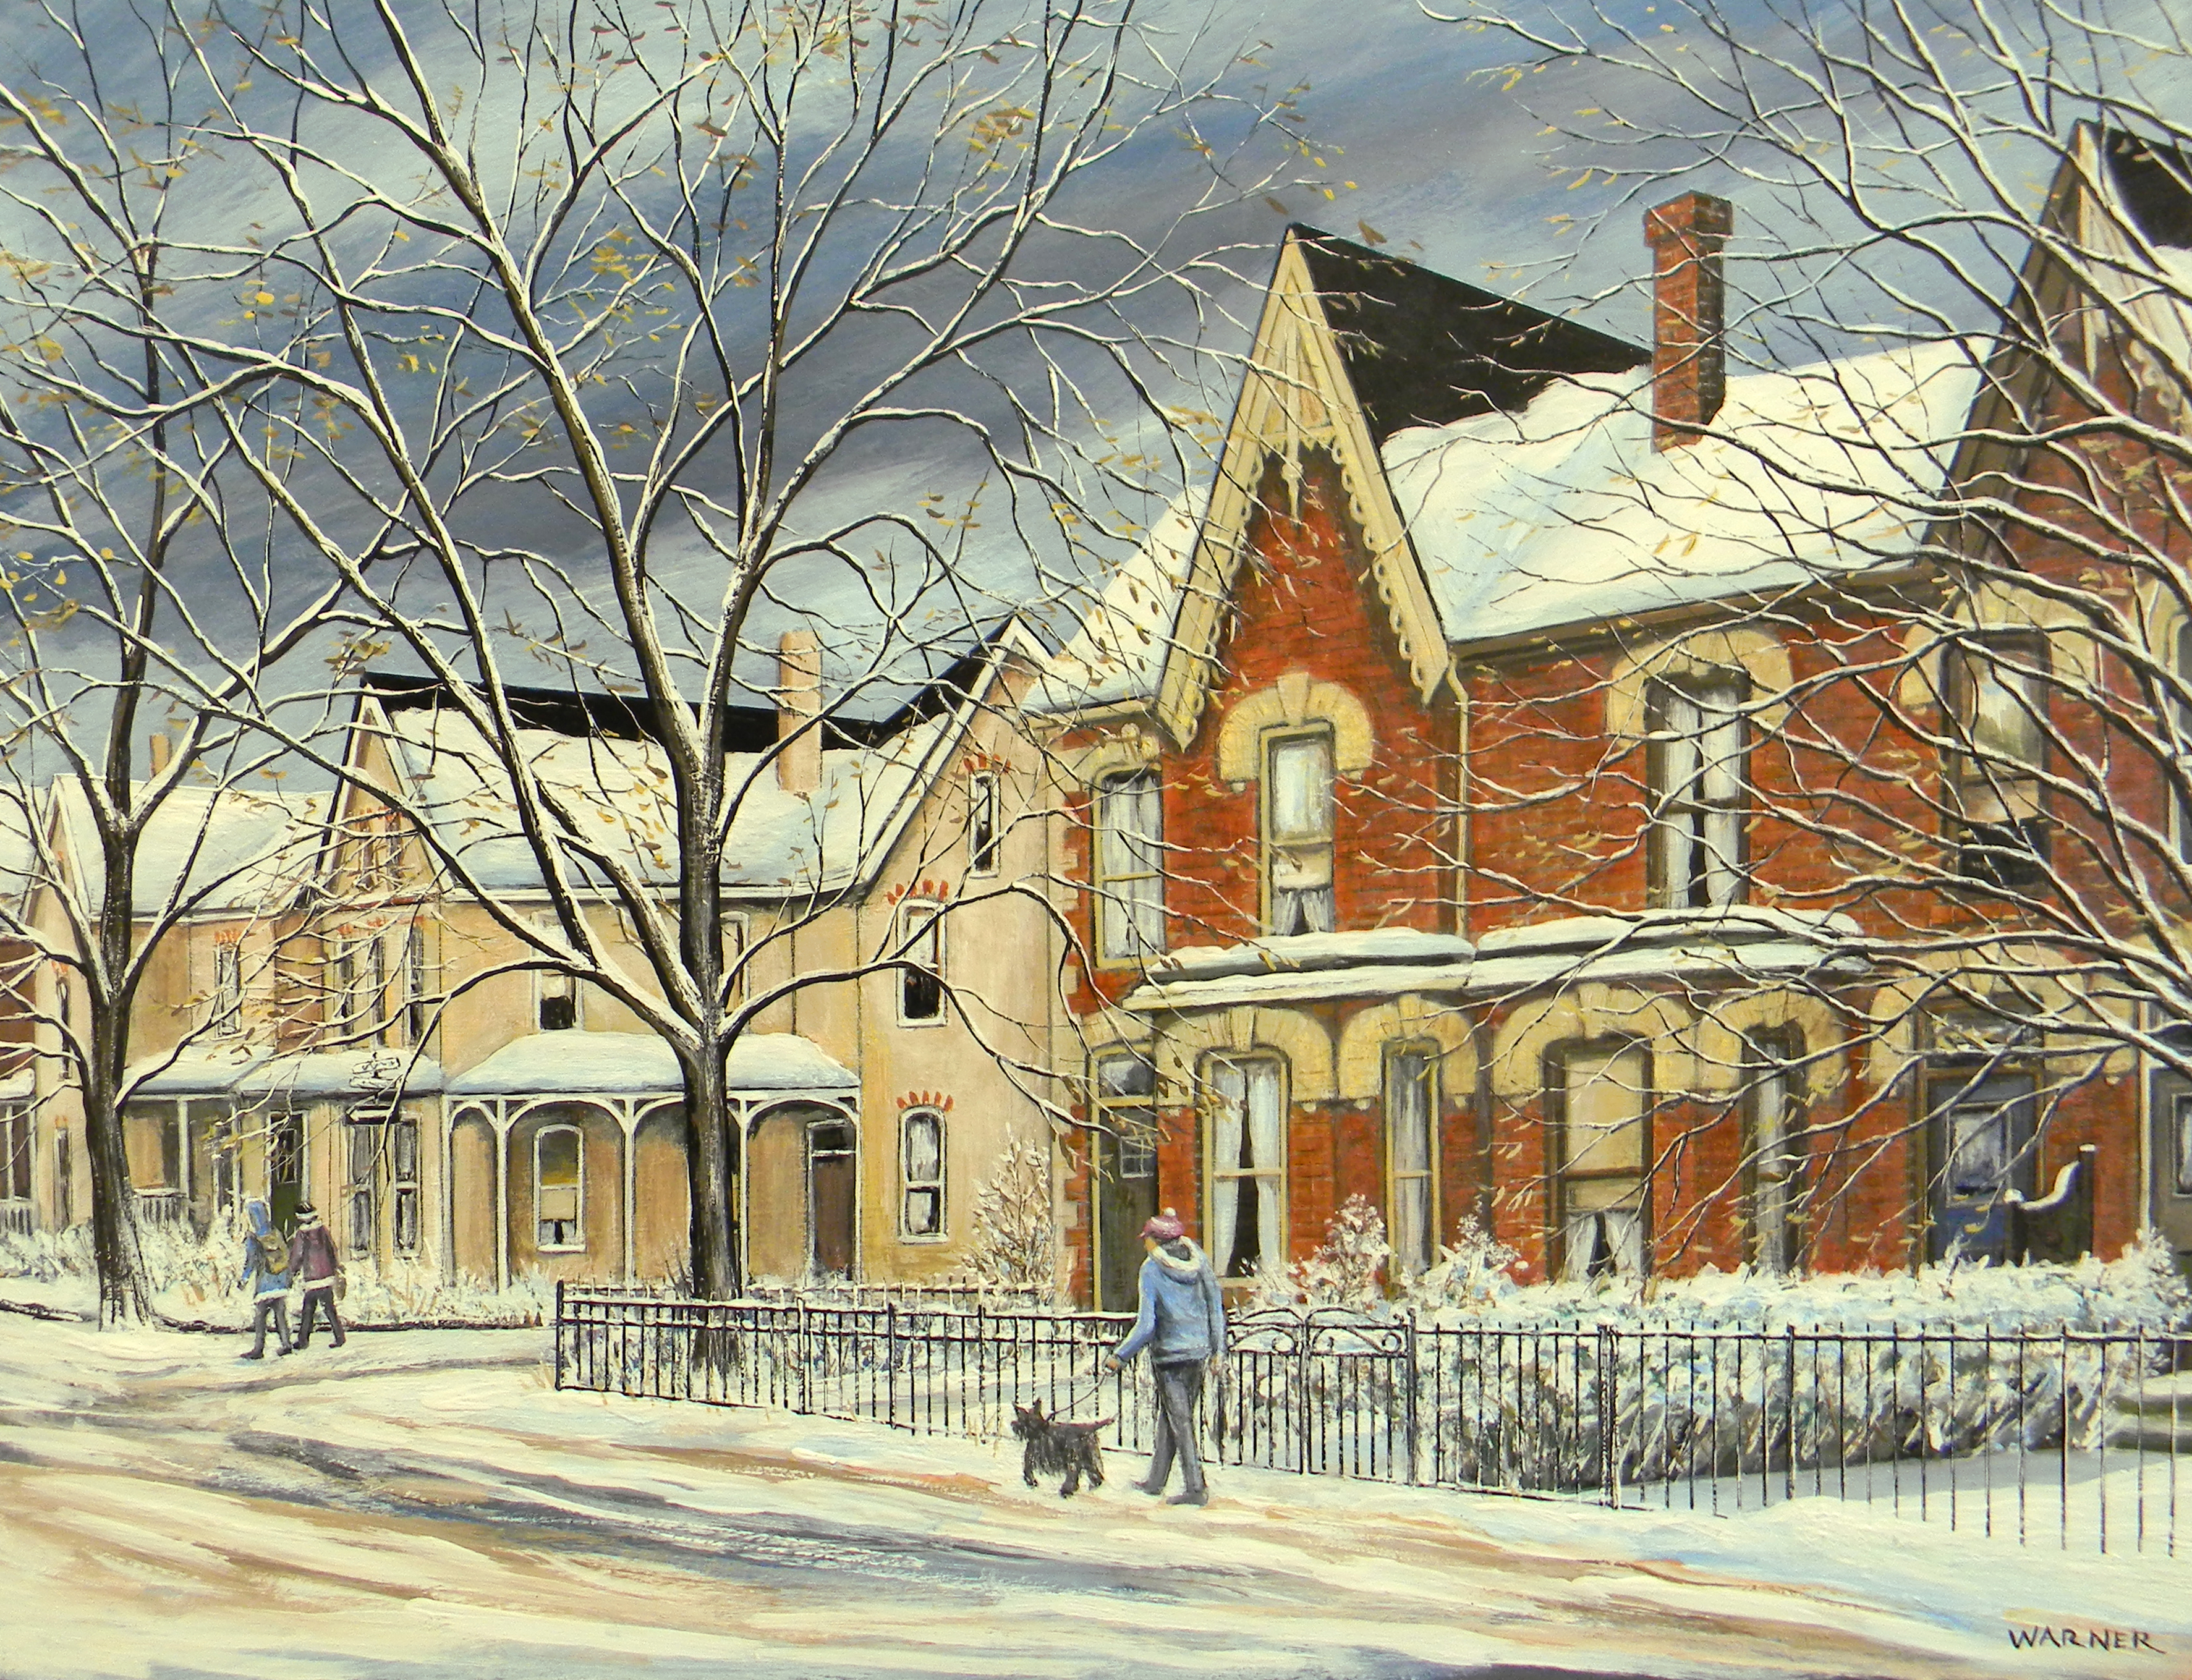 After The Snowstorm - (Corner of Hazelton Ave. and Berryman St.) Toronto